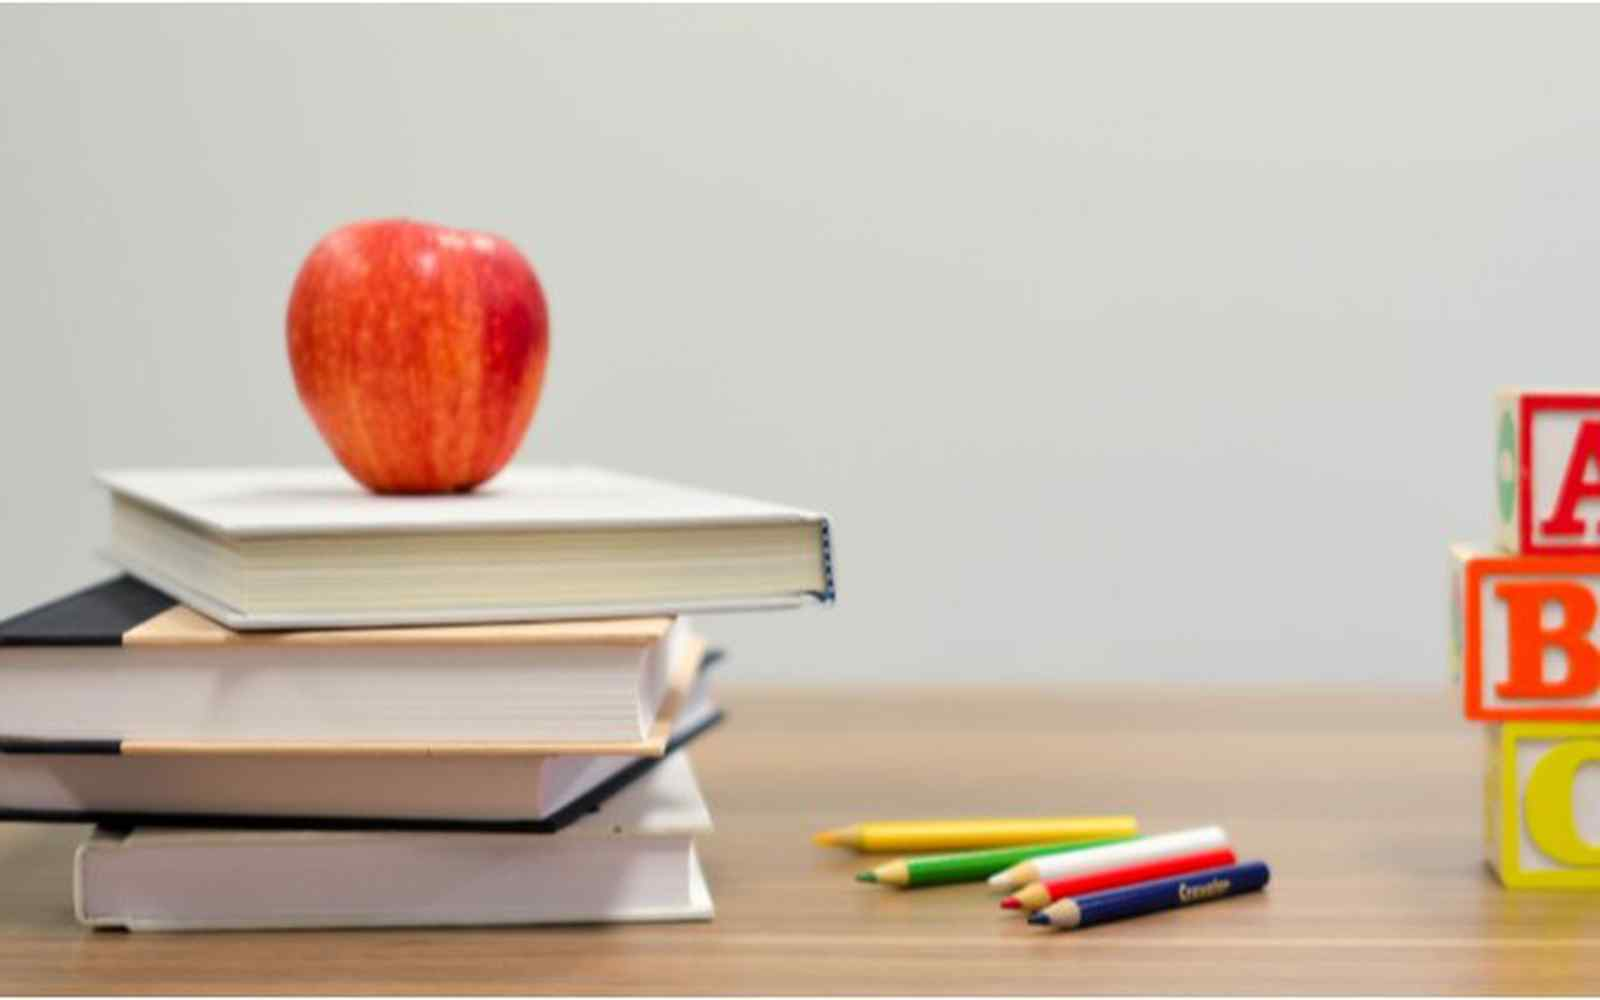 Red apple on stack on books next to crayons